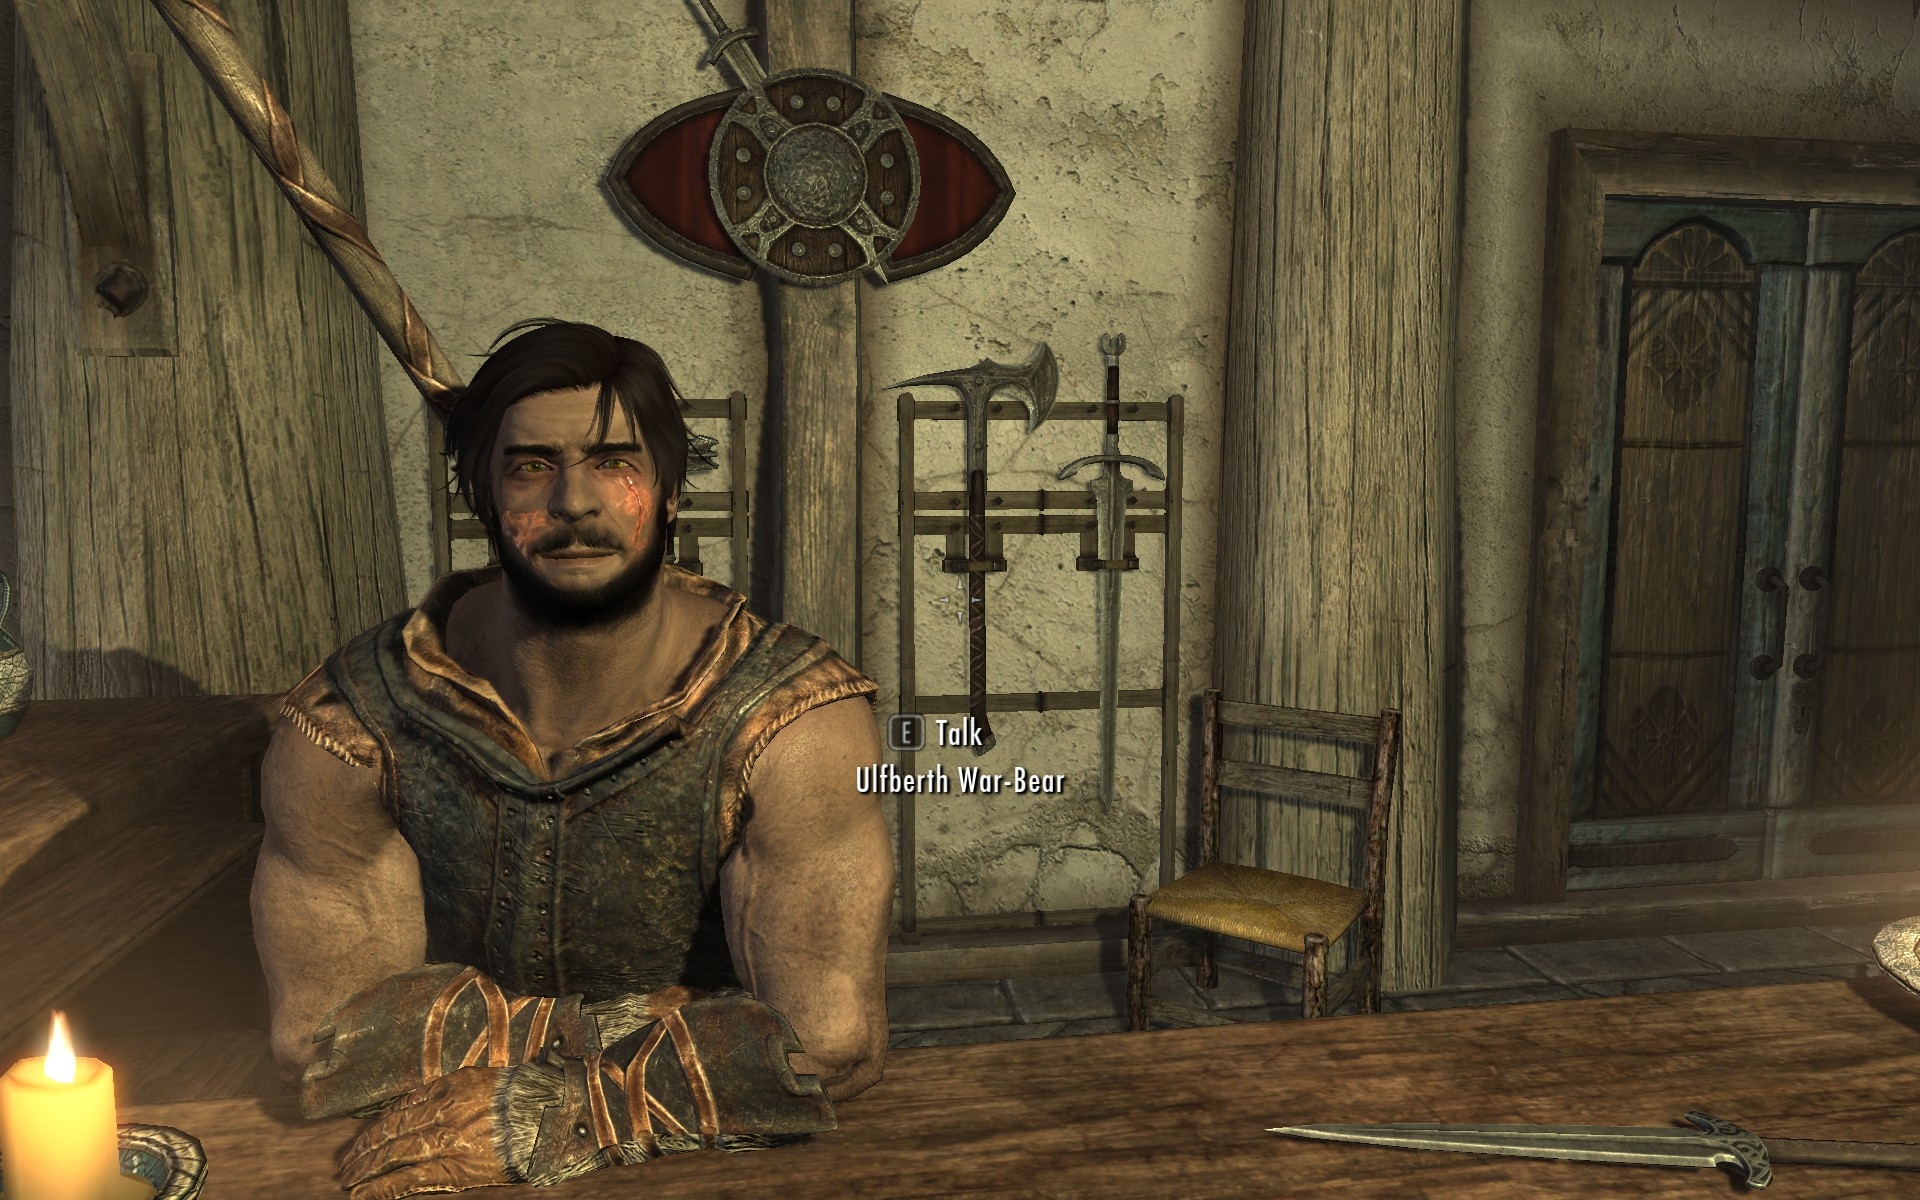 Change NPC appearance in game - EBD 3 30 is here at Skyrim